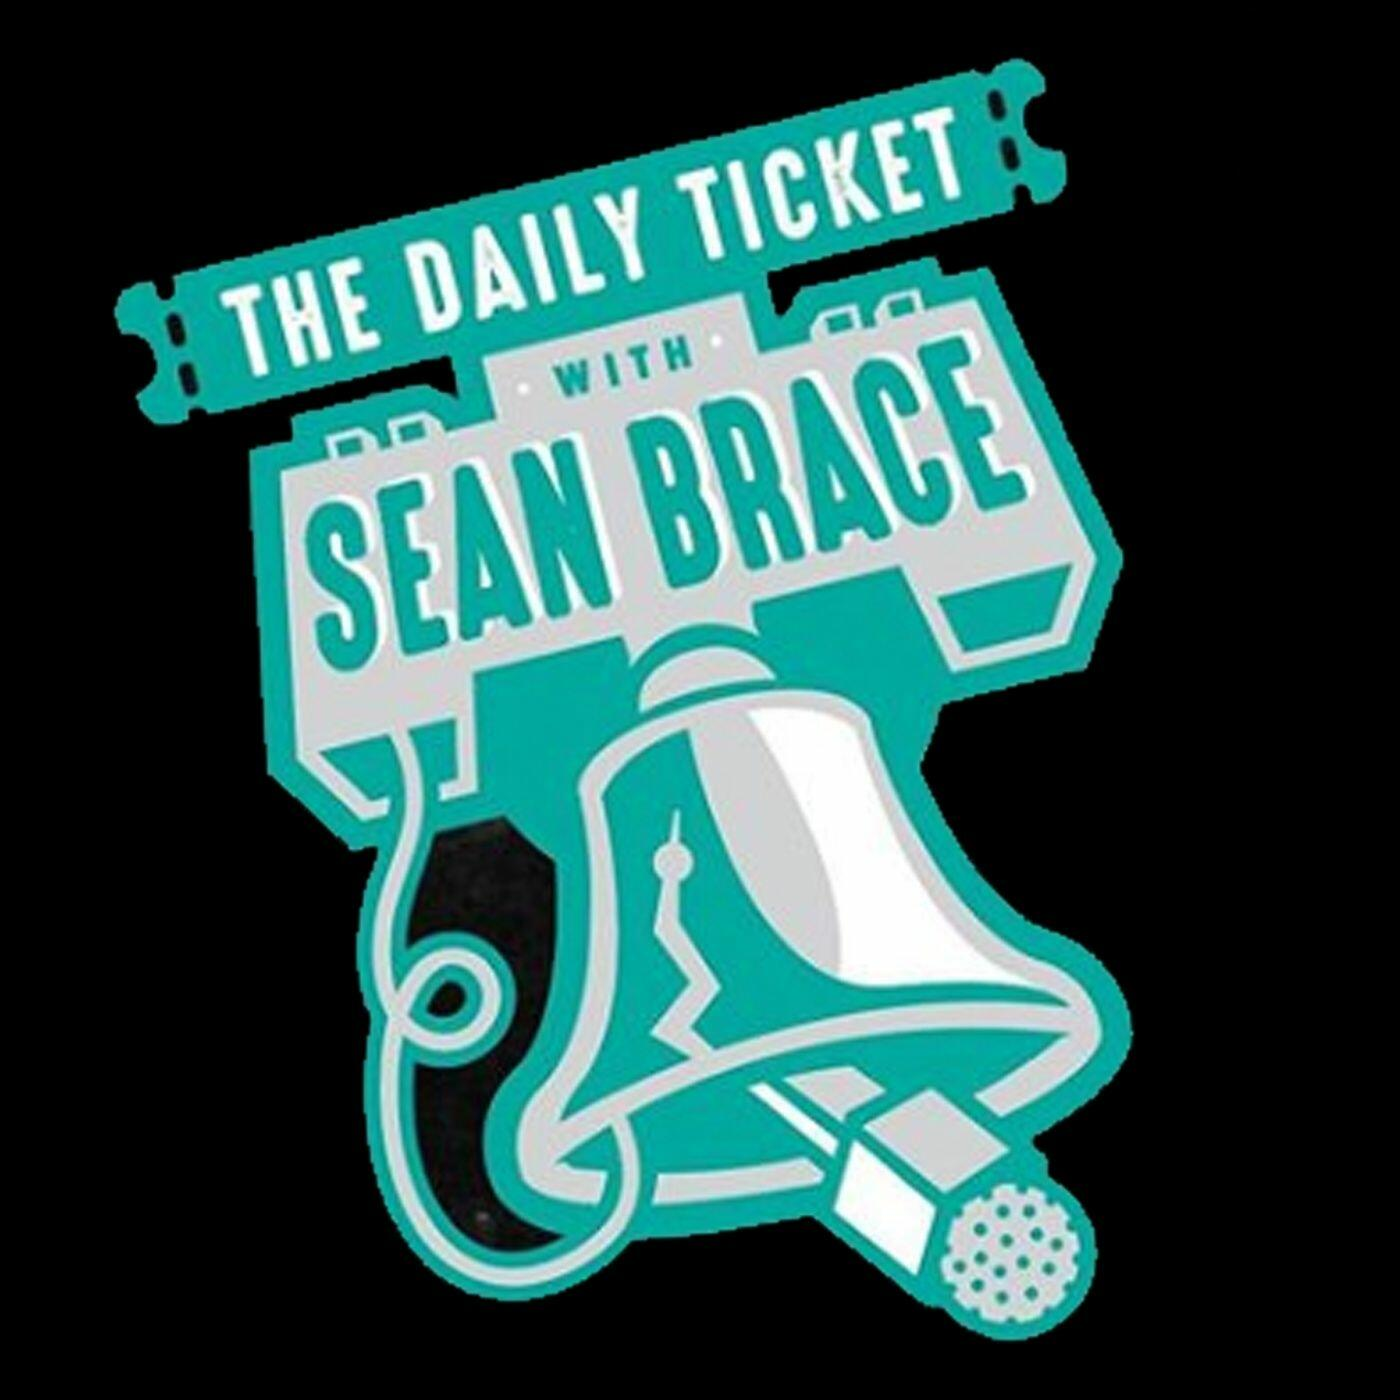 Listen to the The Daily Ticket With Sean Brace Episode - Kevin Stone Interview 10/16 on iHeartRadio | iHeartRadio